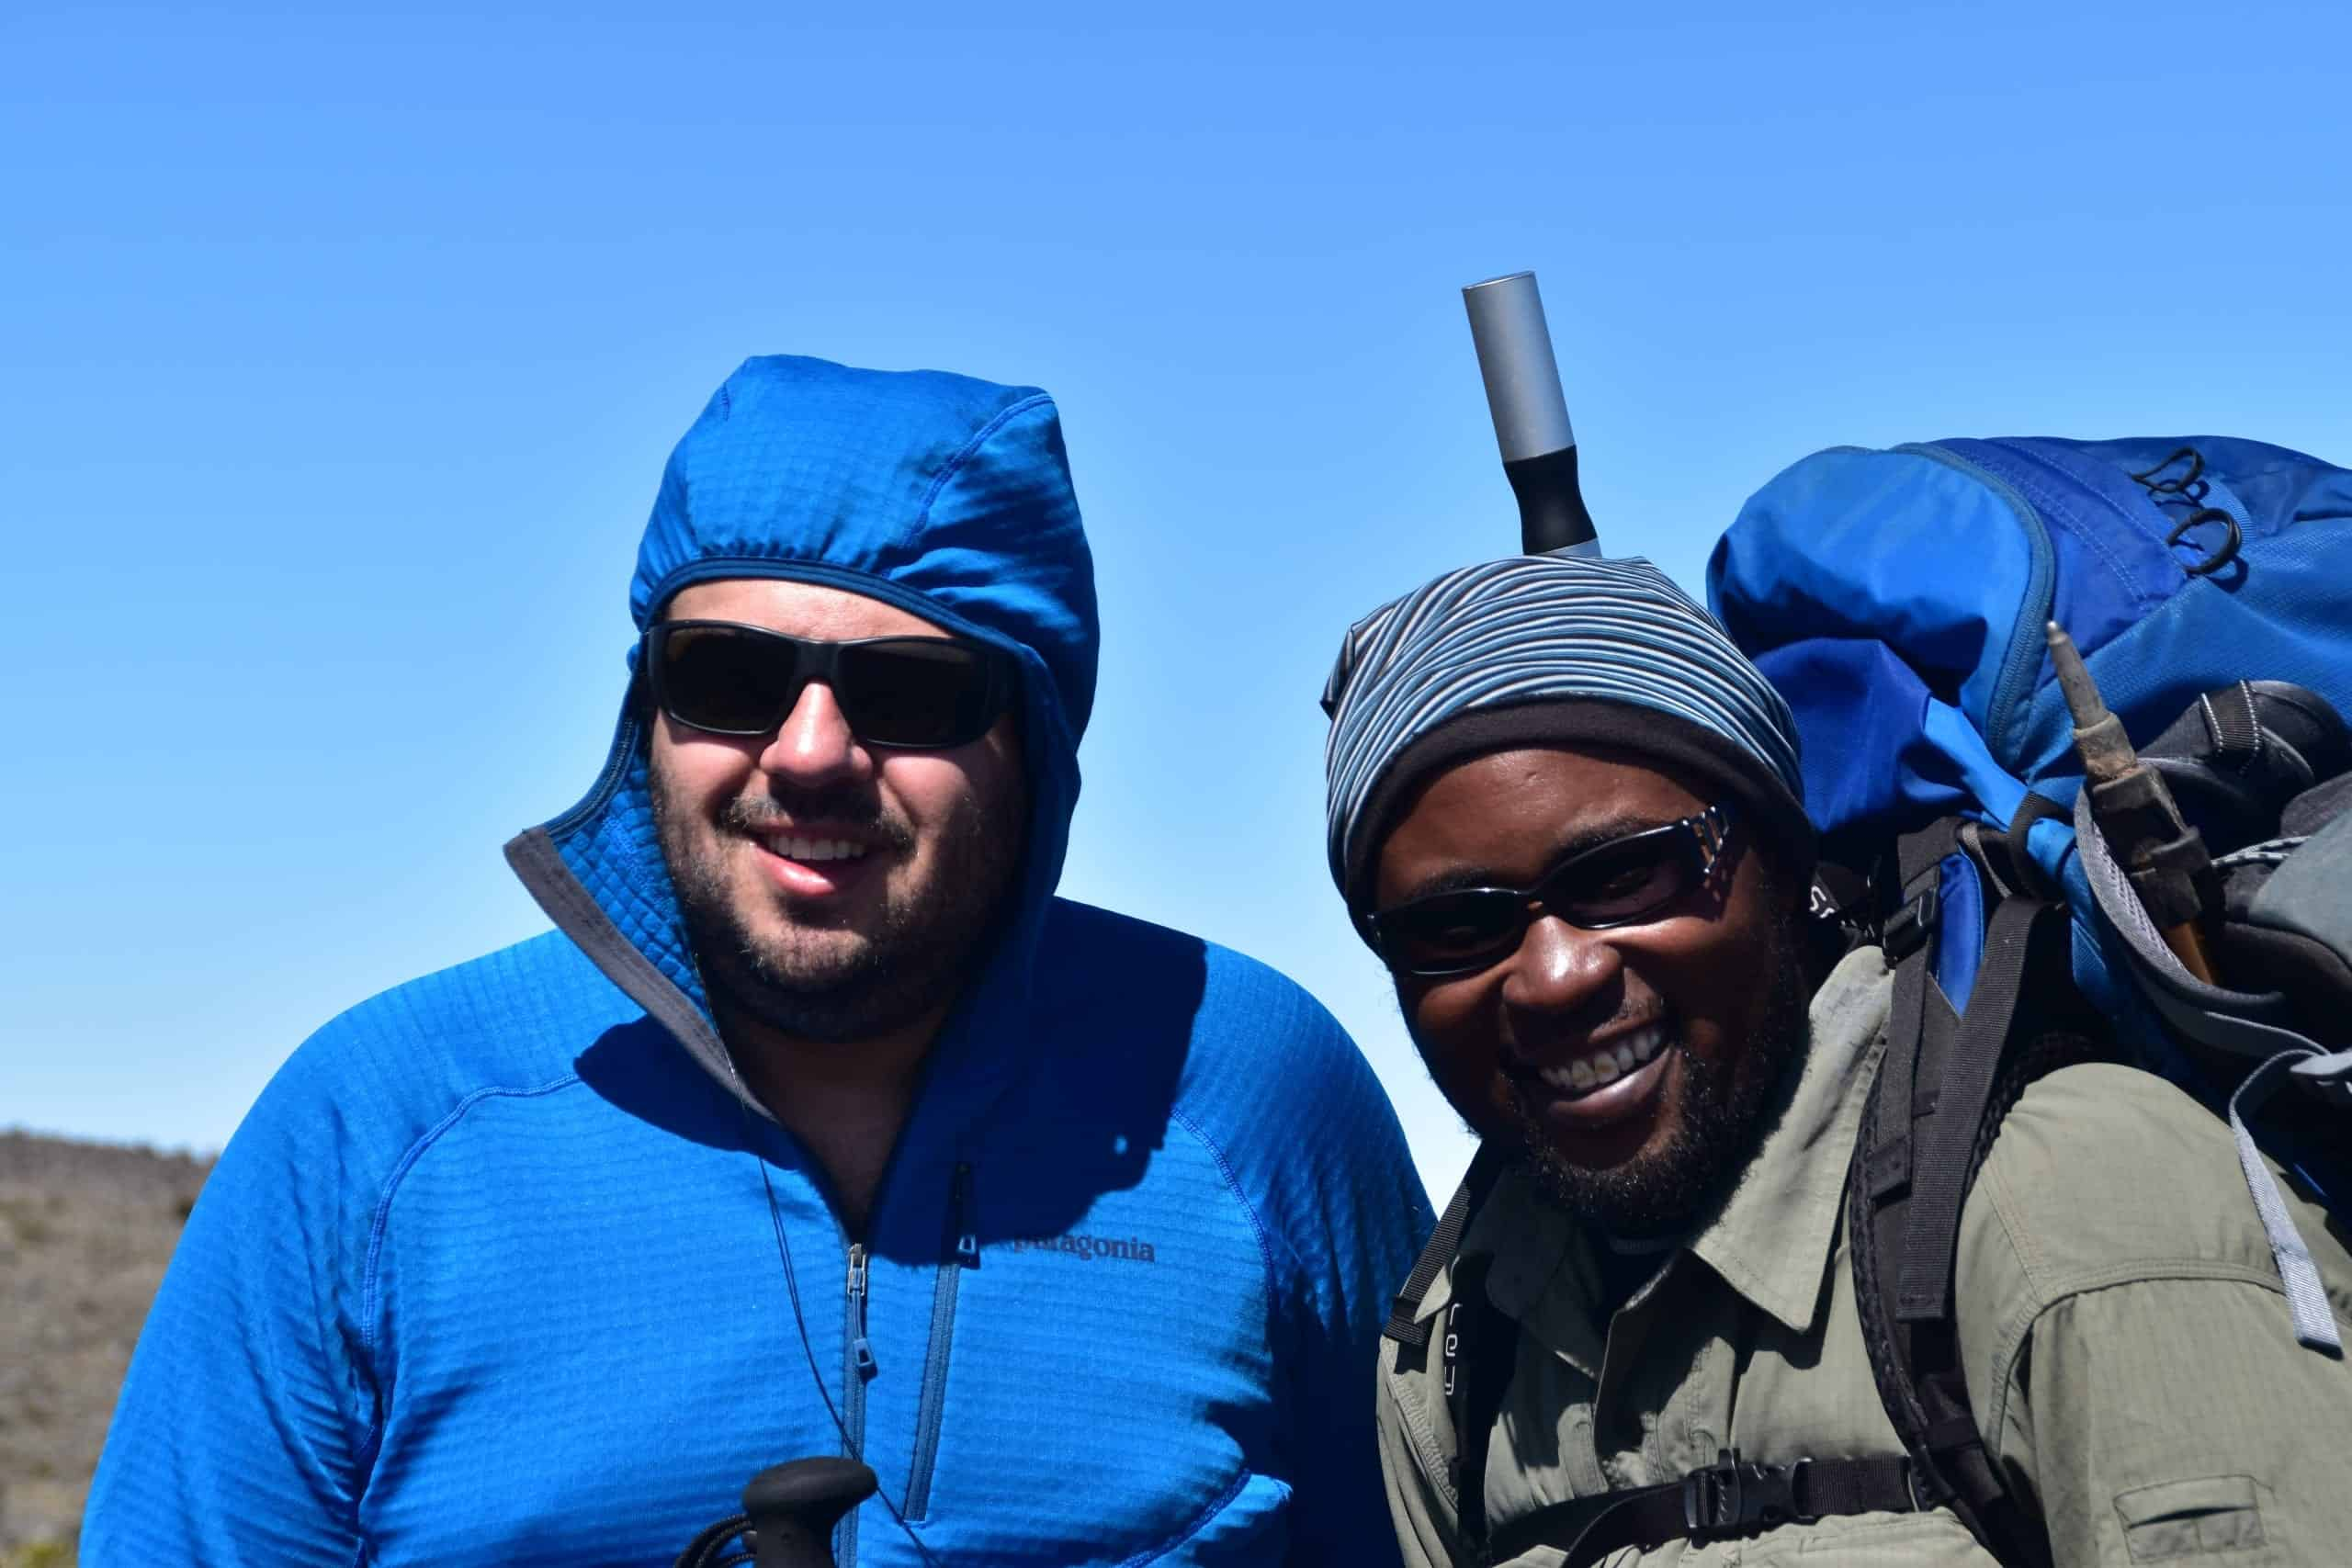 Kilimanjaro Experts dirtector Joshua Ruhimbi and trekker on the mountain